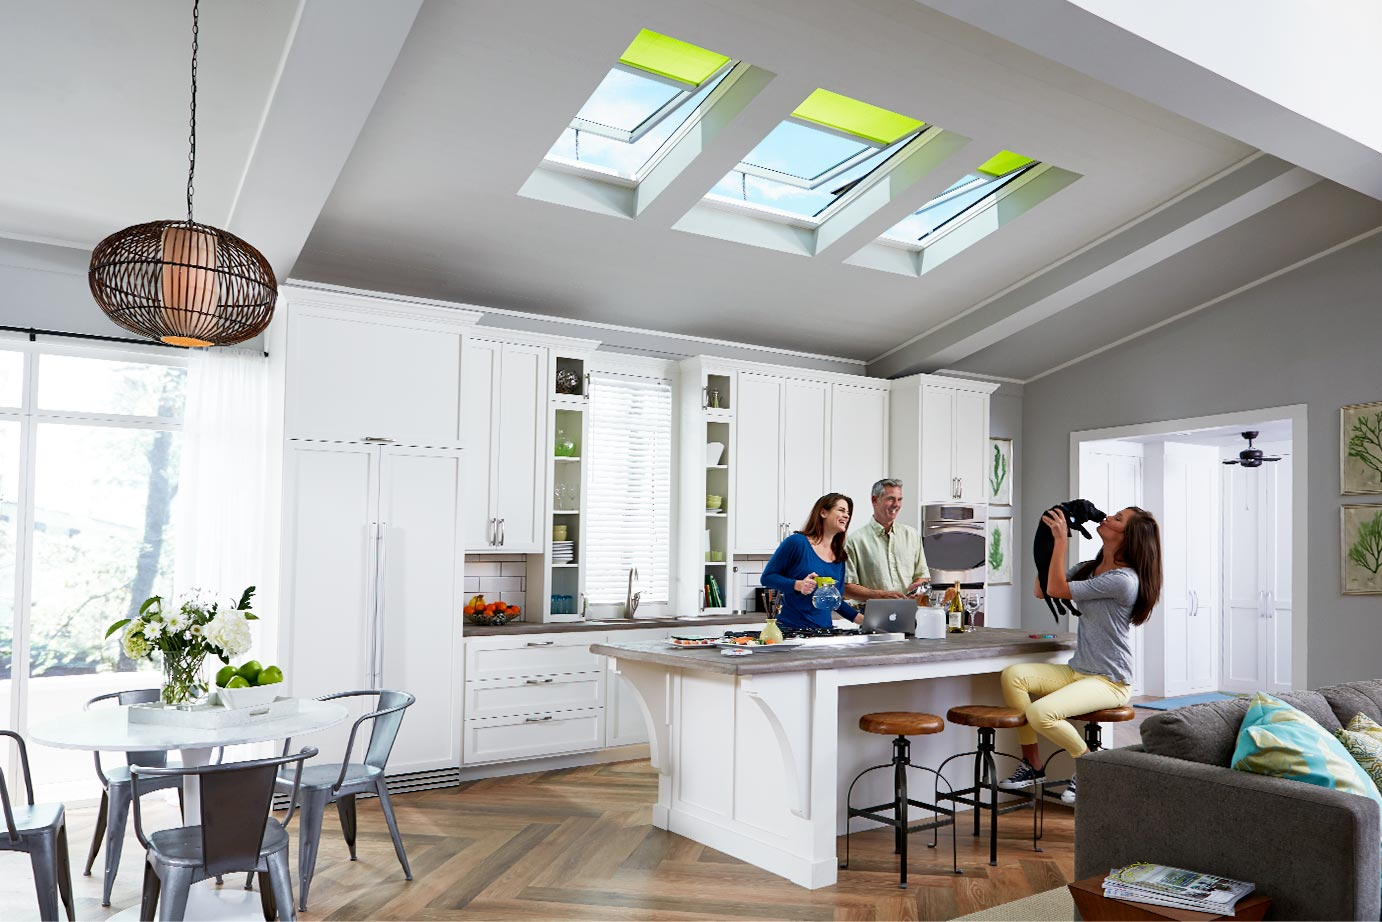 kitchen green blinds?h=922&la=en&w=1382&cc=grid_12&key=145917965341898&sw=960 velux frequently asked questions velux klf 100 wiring diagram at bayanpartner.co